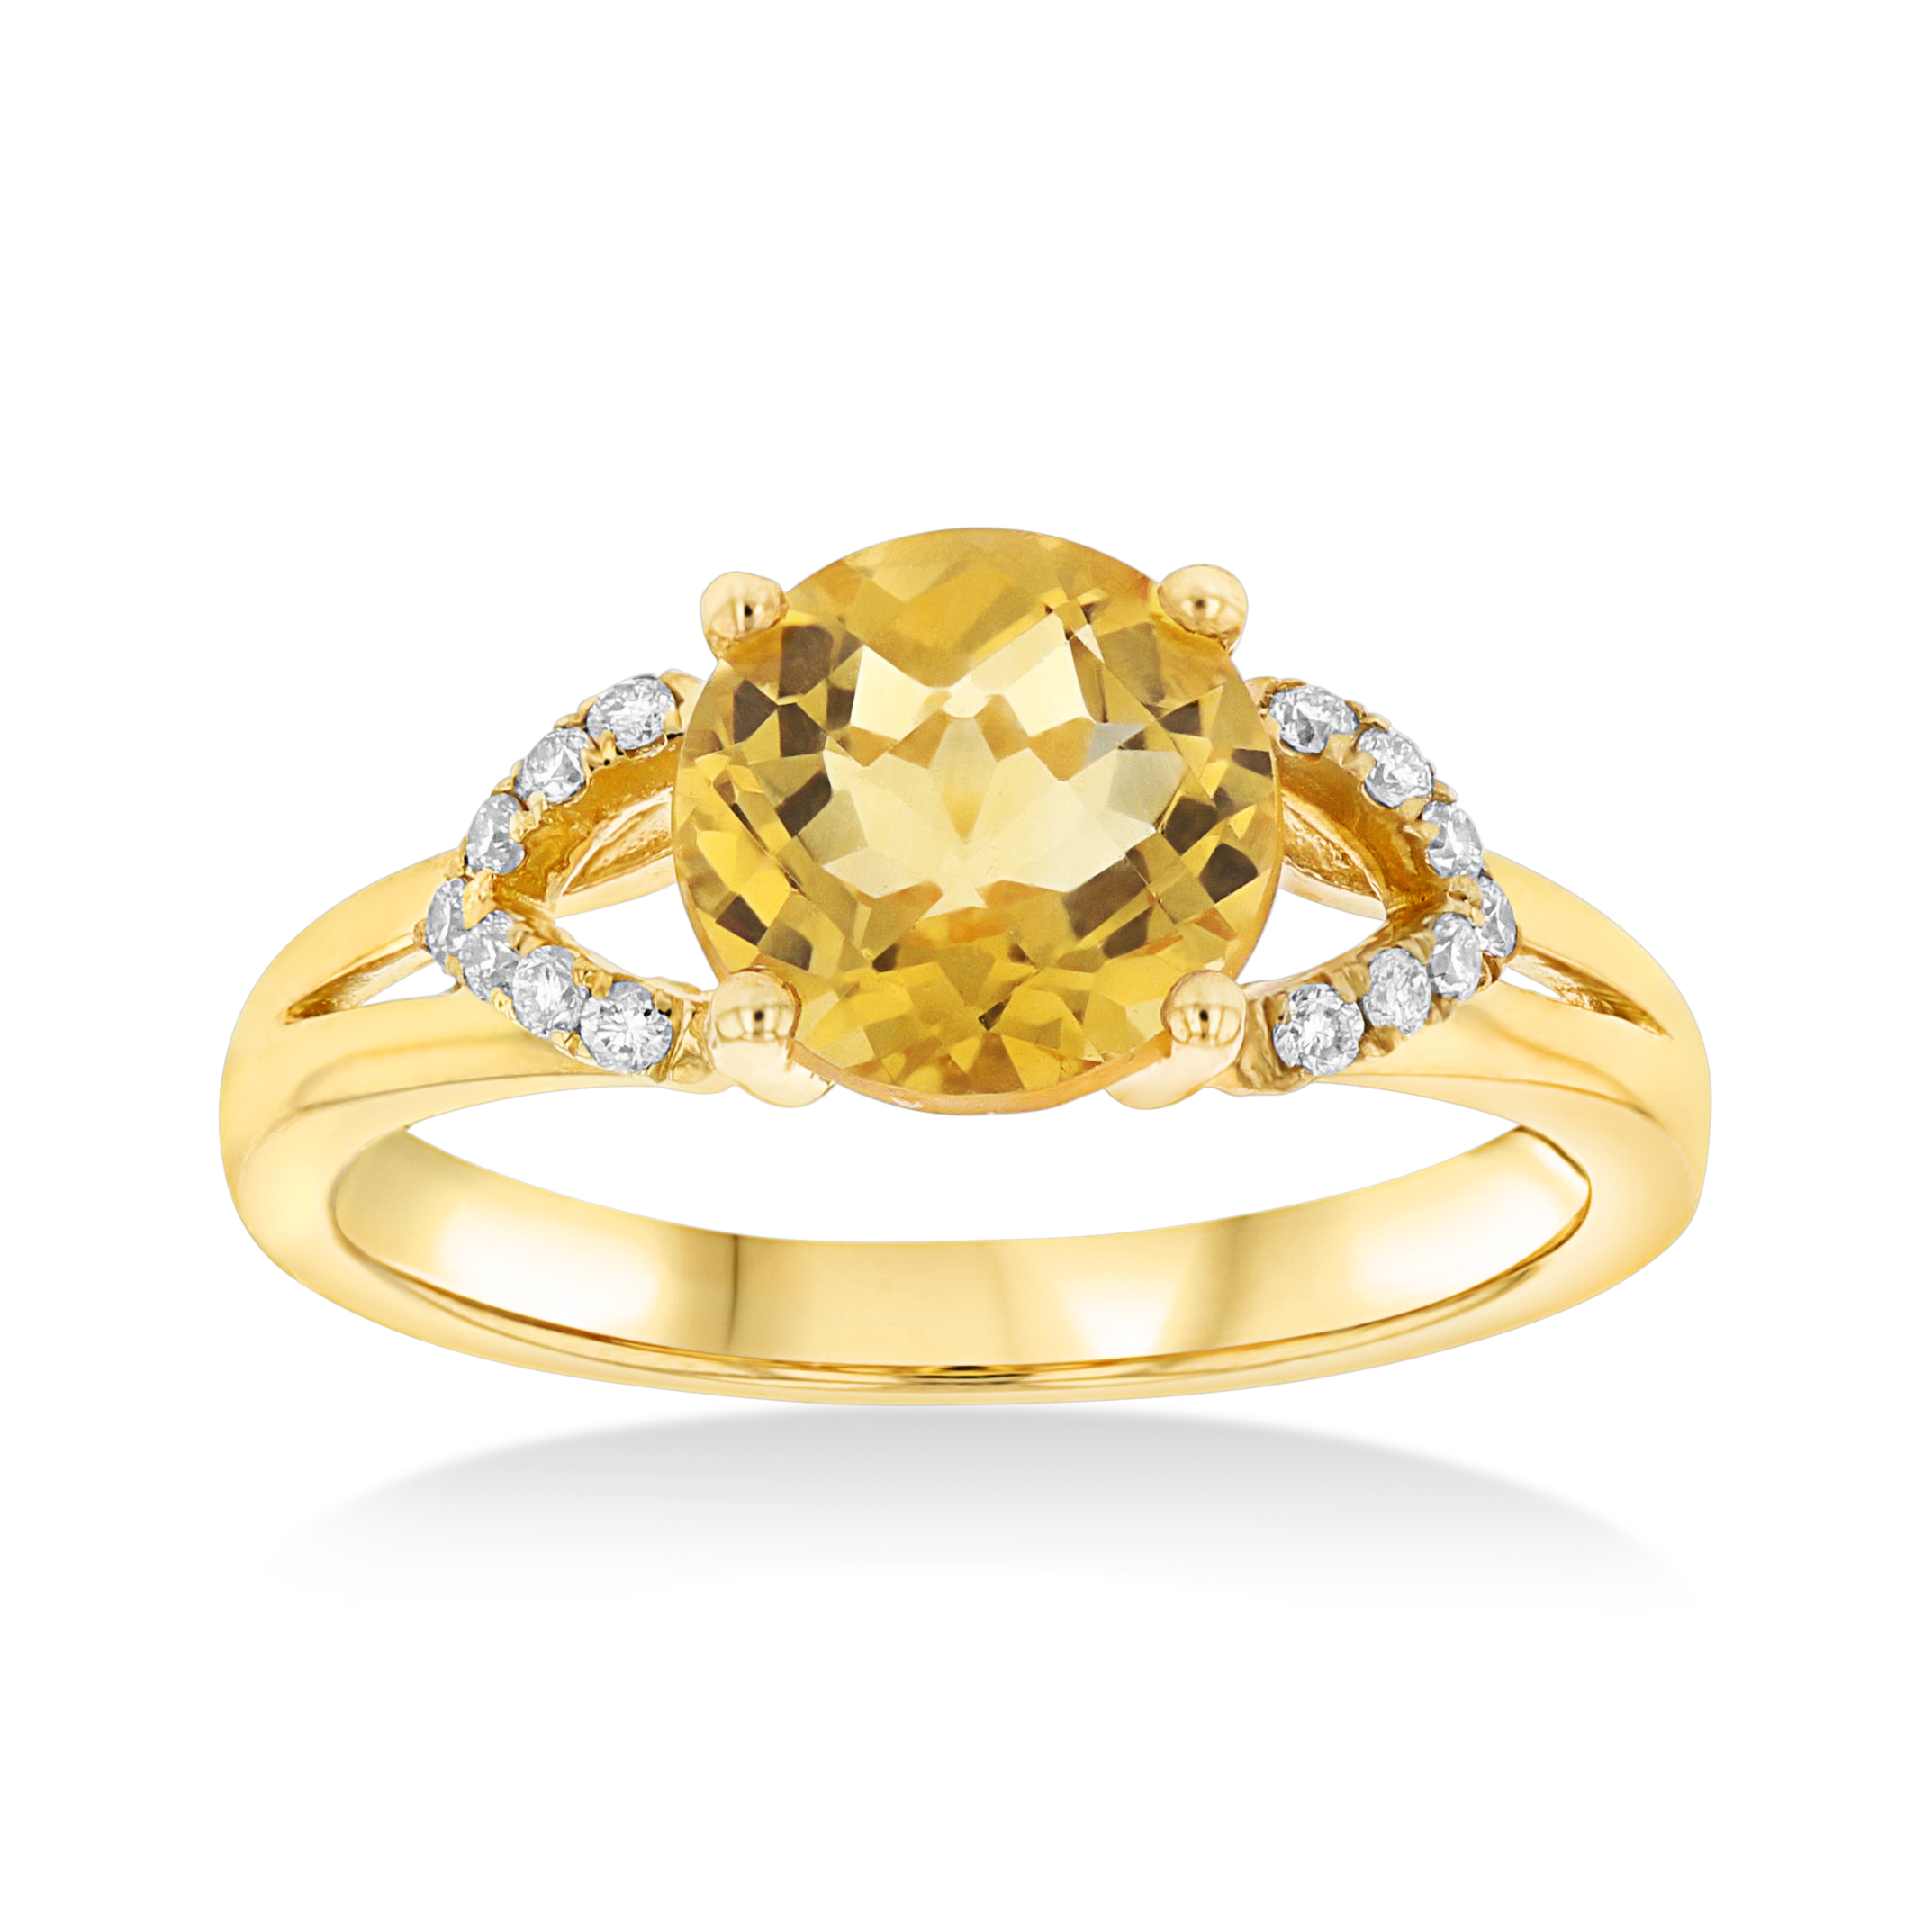 View 0.12ctw Diamond and Citrine Fashion ring in 14k YG